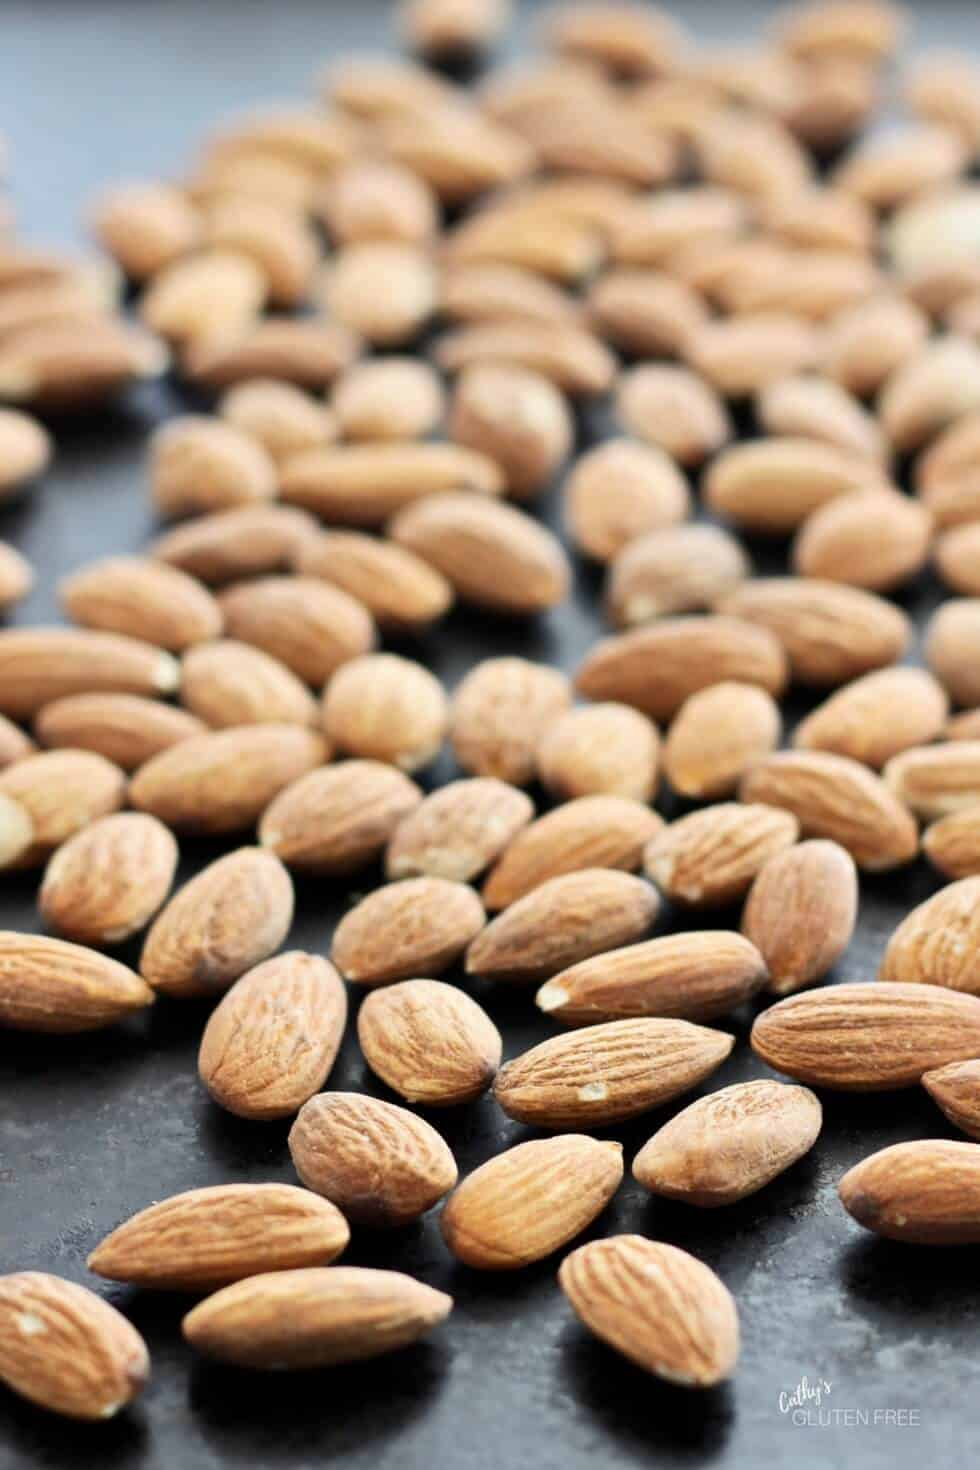 Whole Shelled Almonds